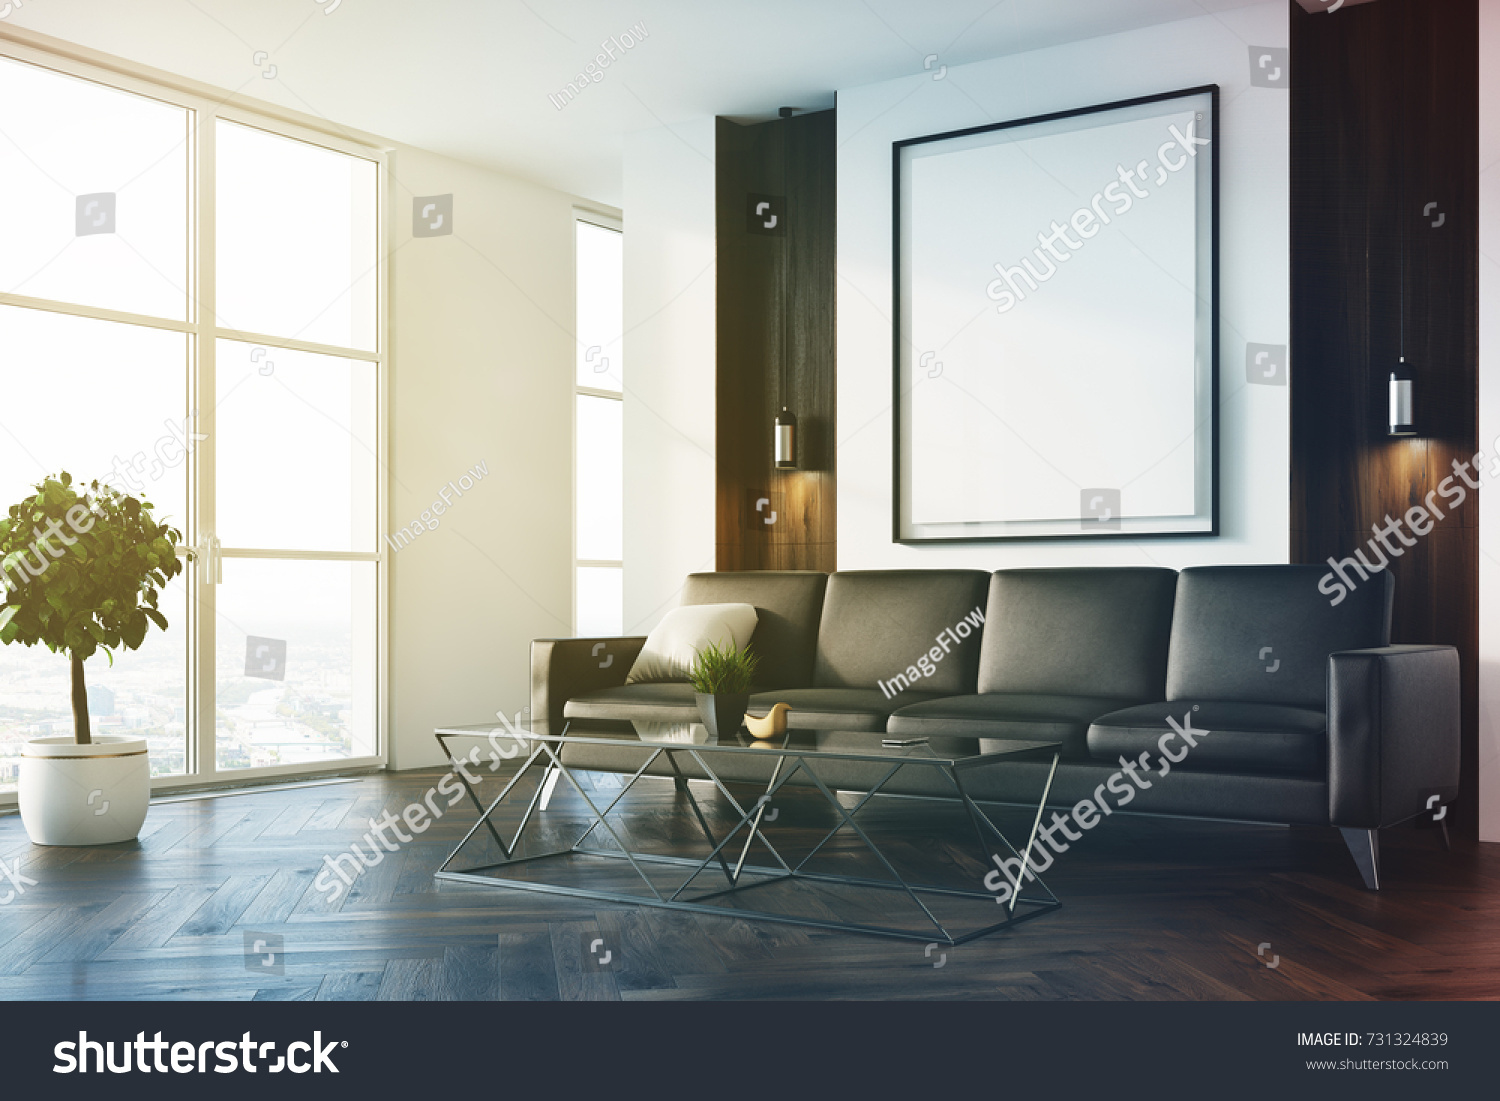 Upscale Living Room Interior White Wooden Stock Illustration ...